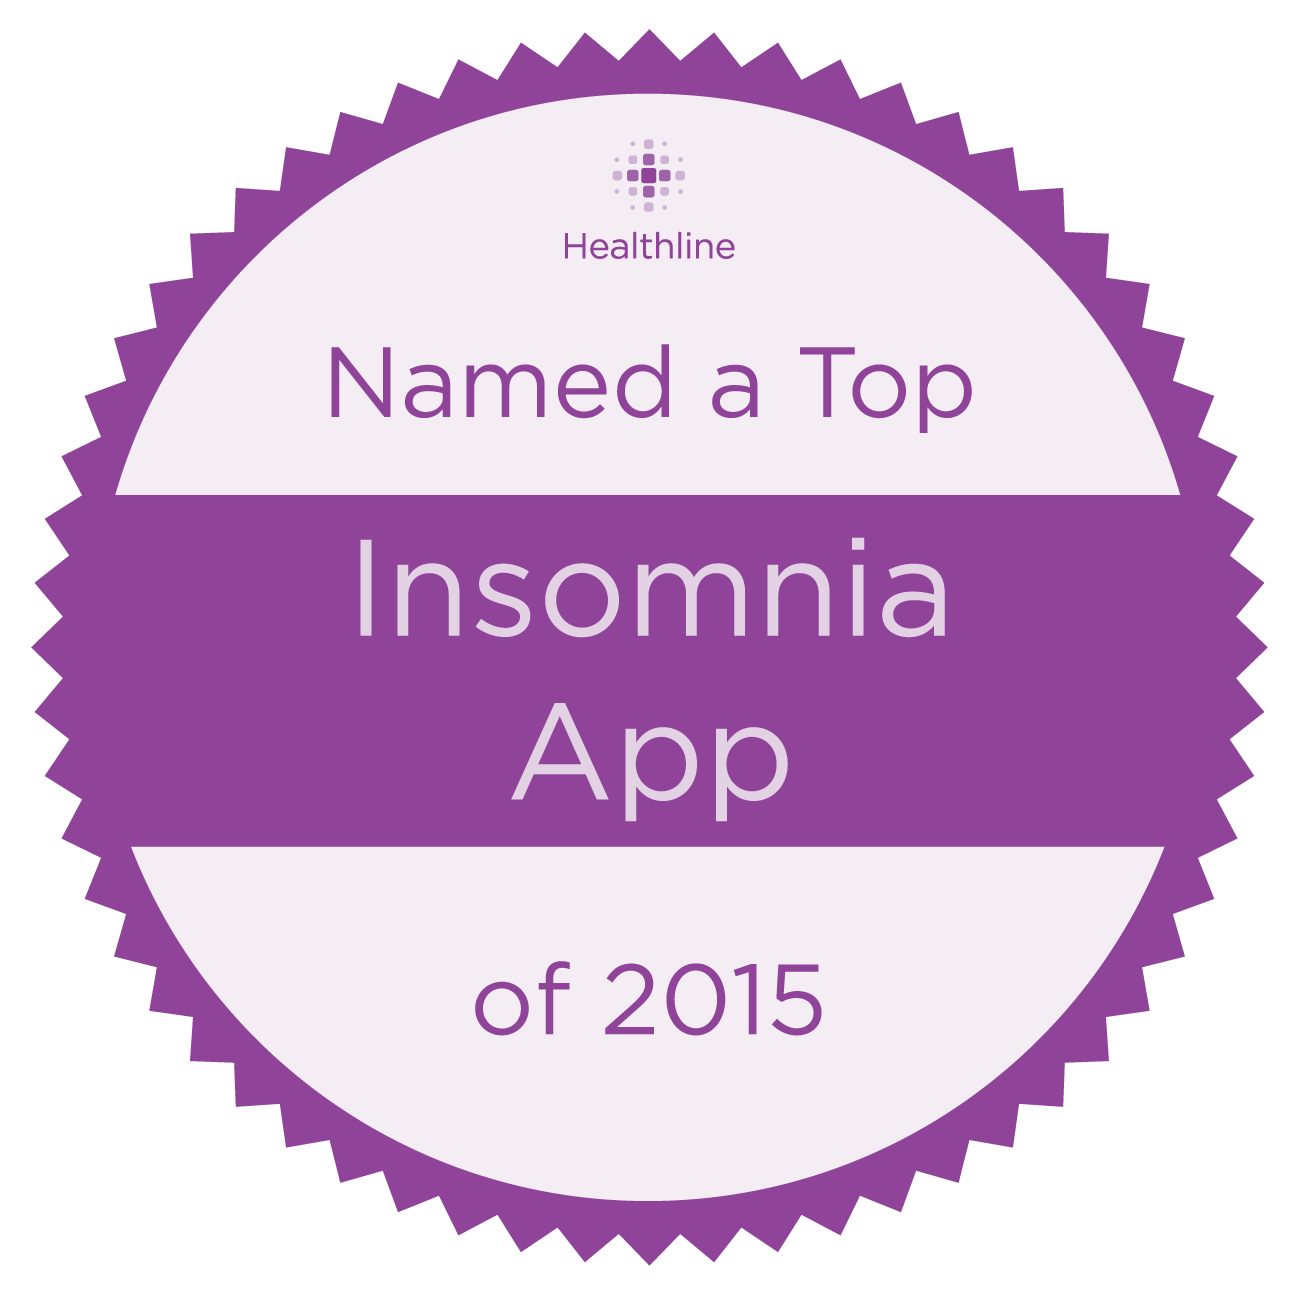 The Best Insomnia iPhone and Android Apps of 2015